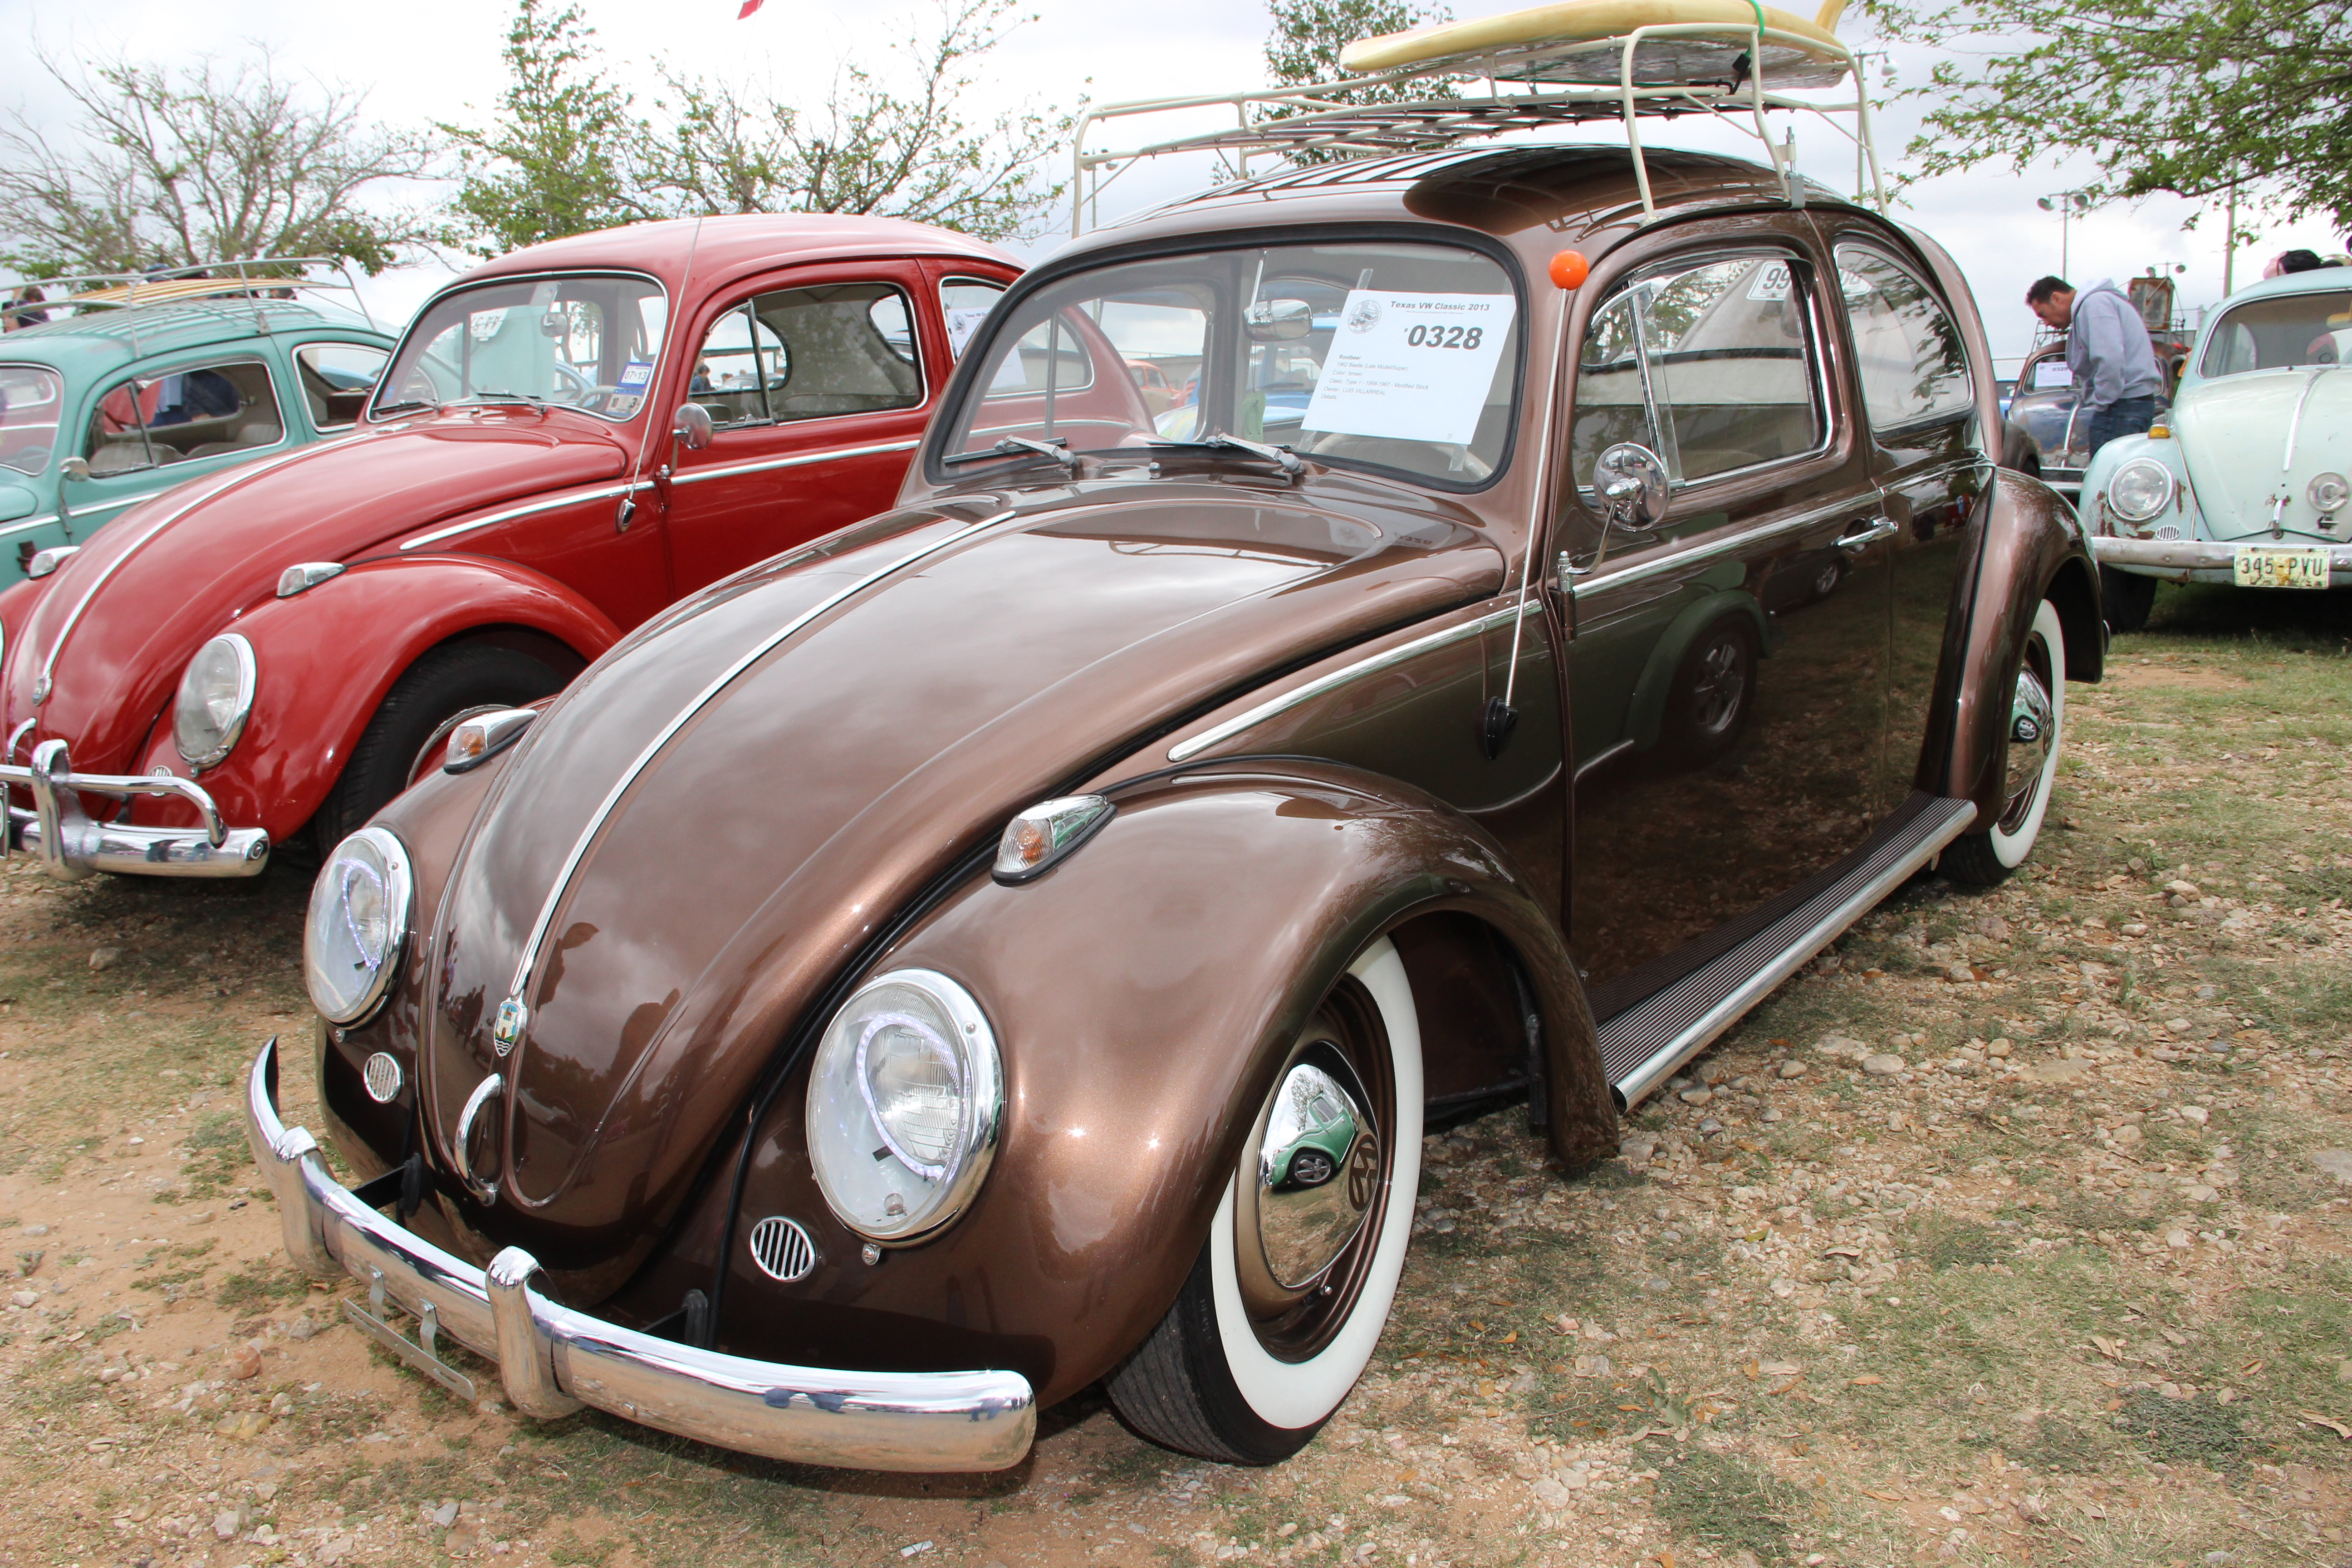 Rootbeer 0328 Texas Vw Classic